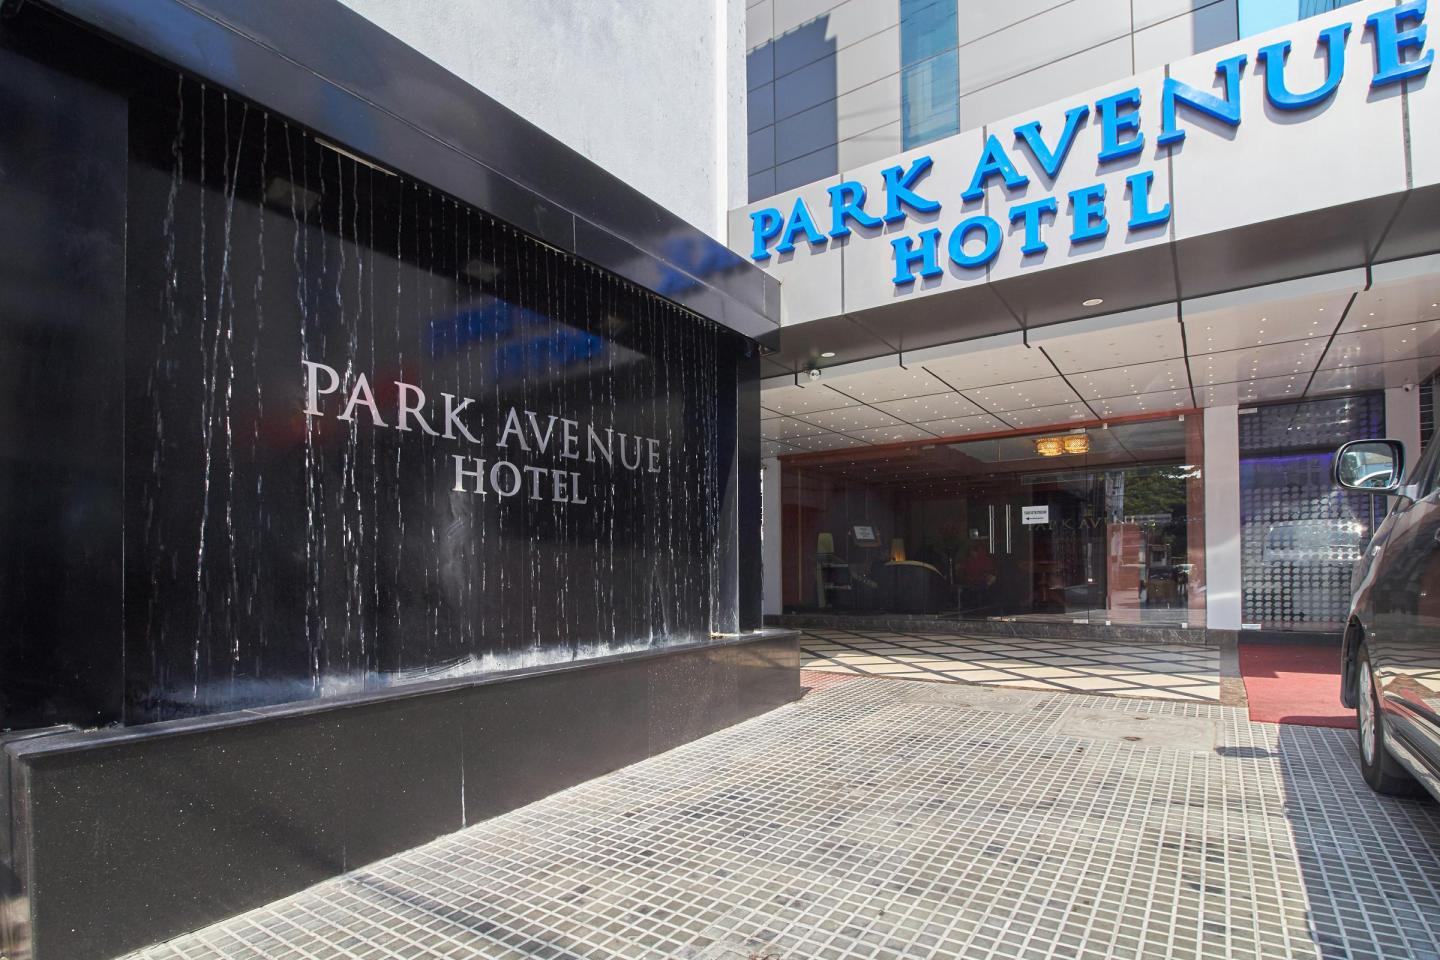 Avenue Hotel Park Avenue Hotel, Chennai - Get Upto 70% Off On Booking